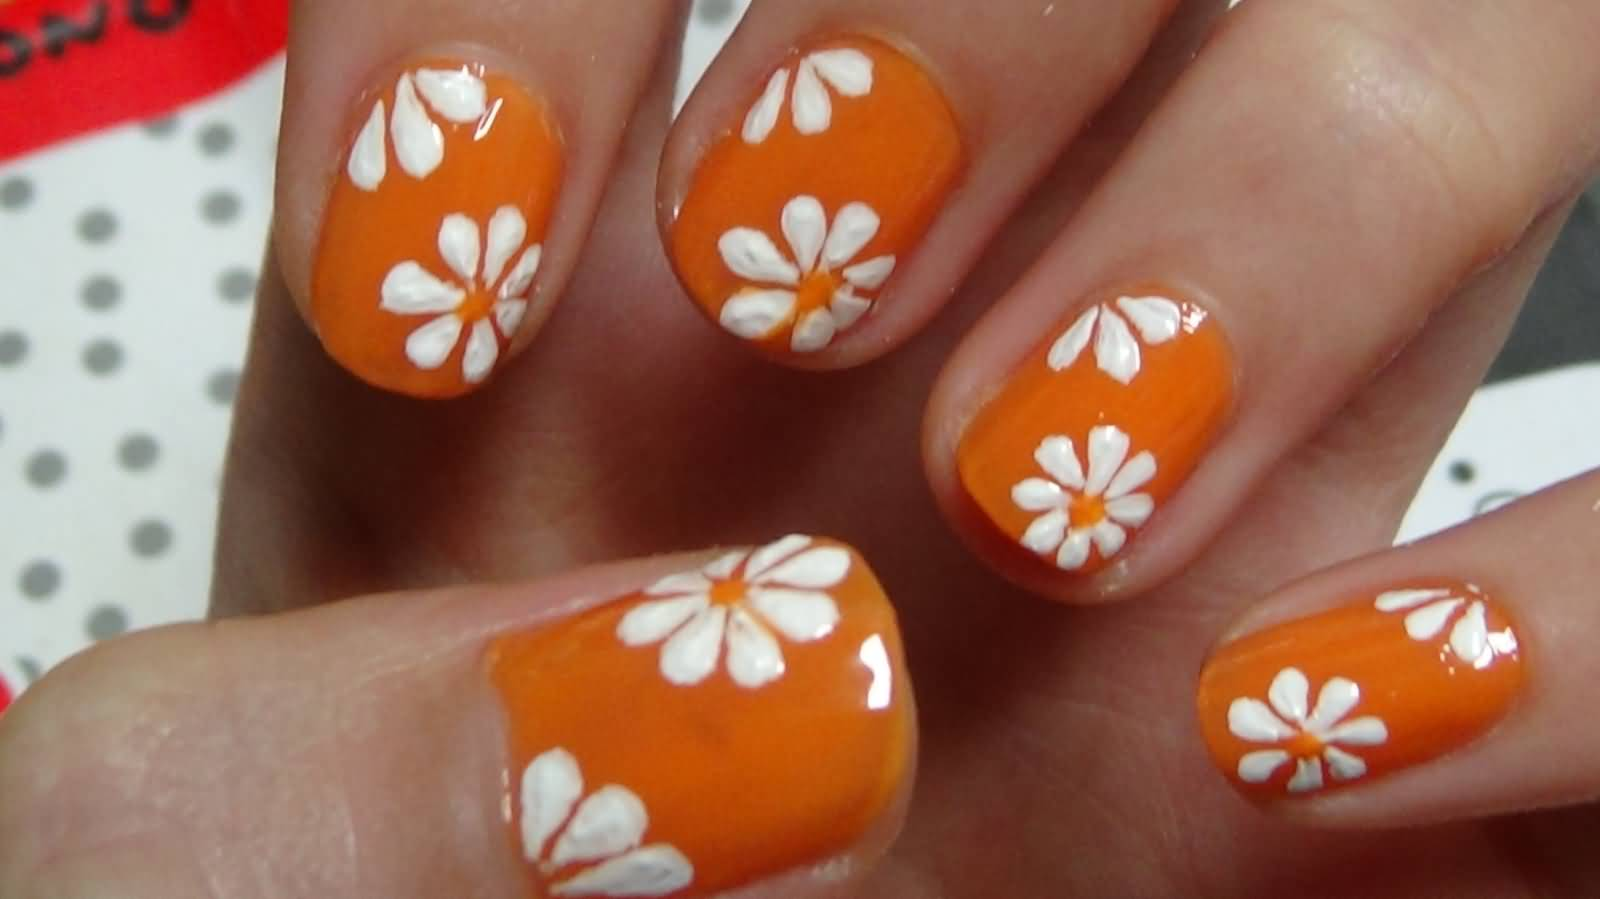 Orange Nails With White Acrylic Flowers Design Nail Art